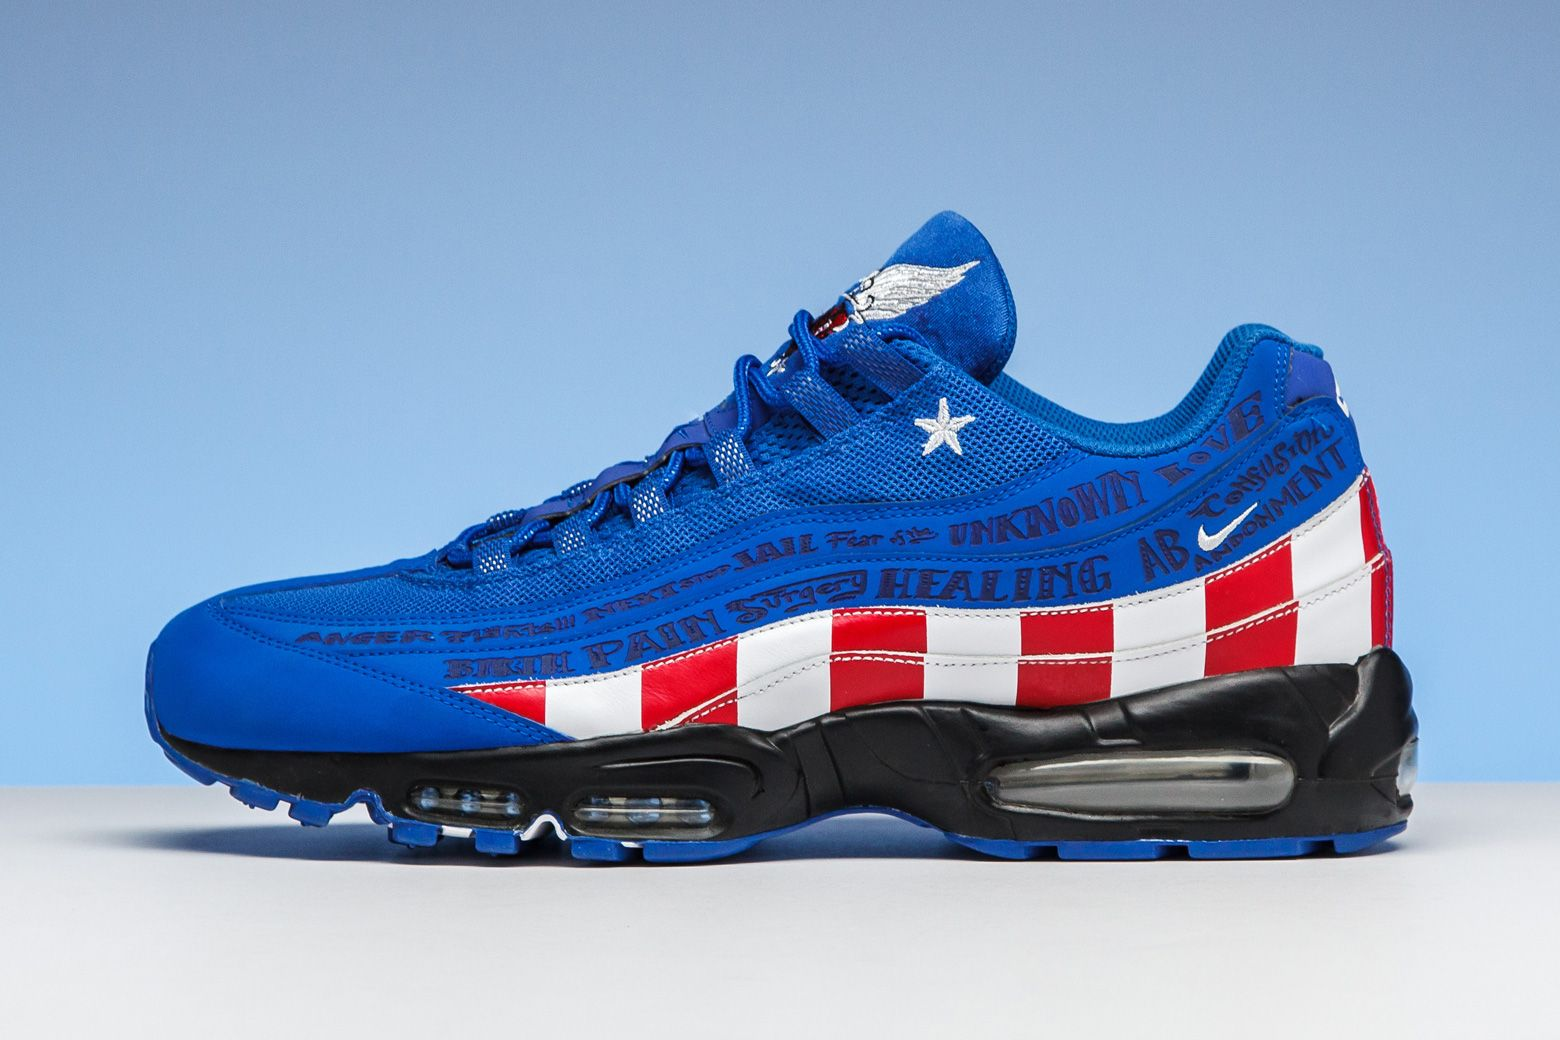 25c633c4f2 Nike re-released this Doernbecher-edition Air Max 95 in 2013 to celebrate  10 years of the charitable partnership.